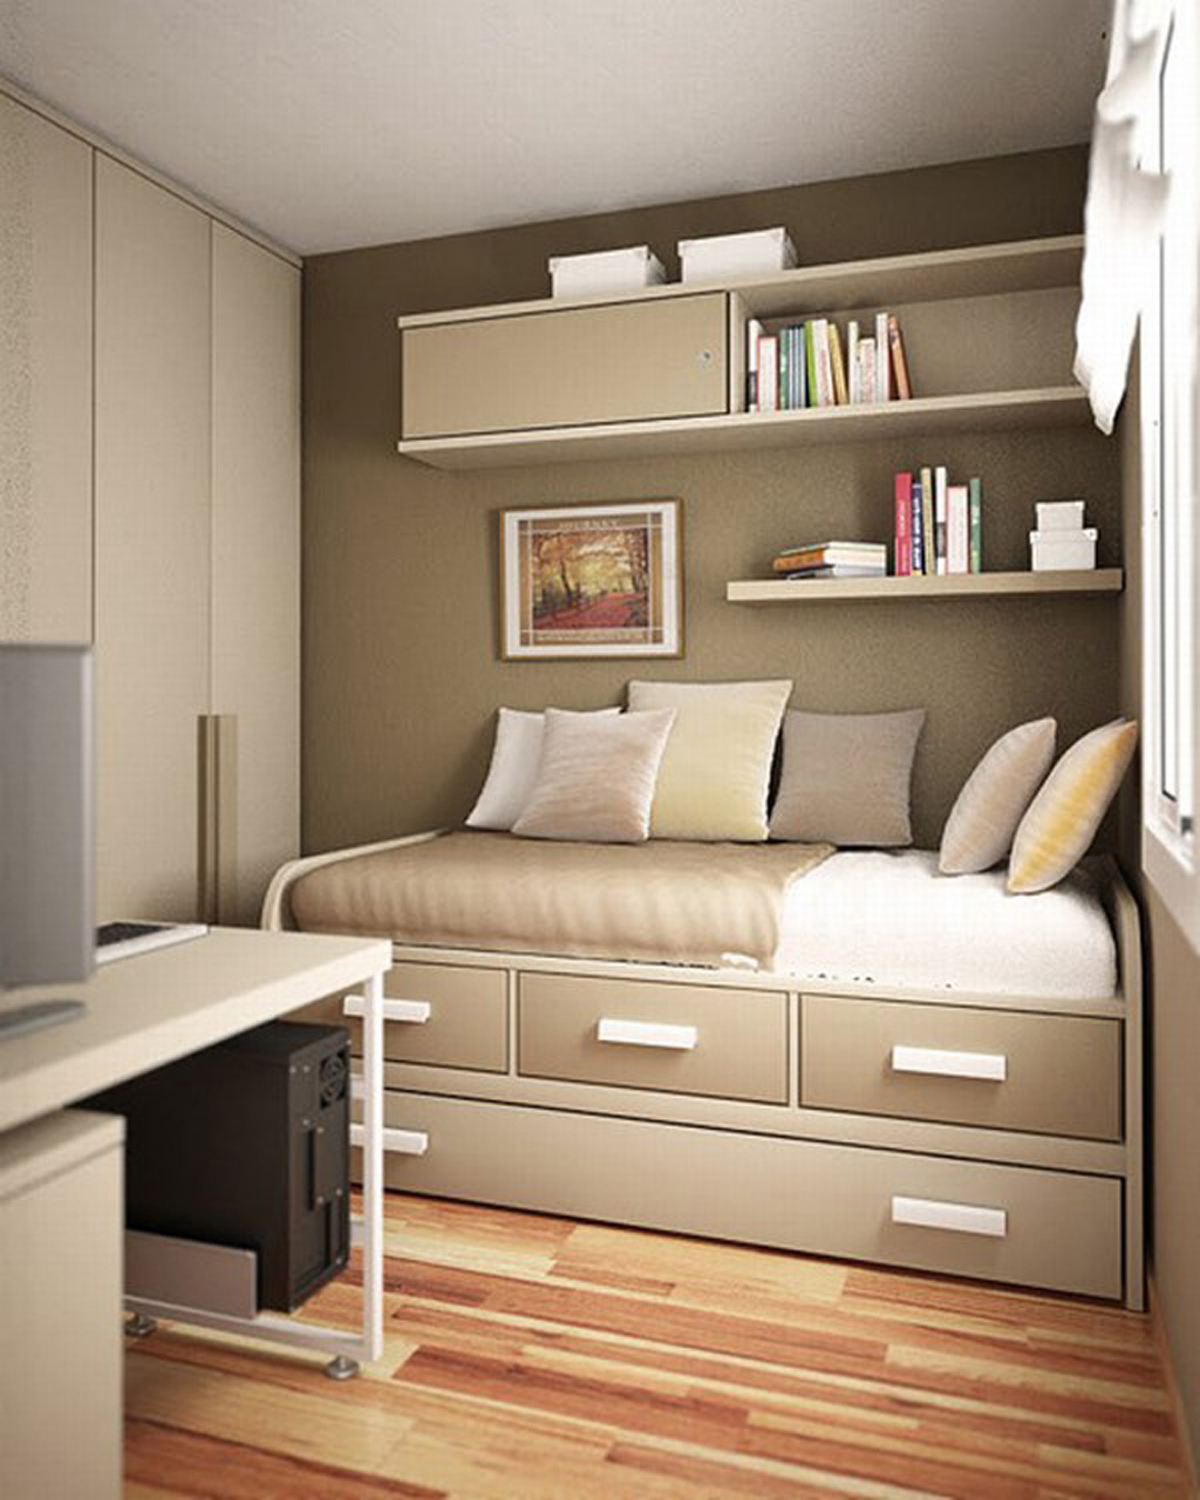 Small Bedroom Design Ideas Pictures Bathroom Latest Collections